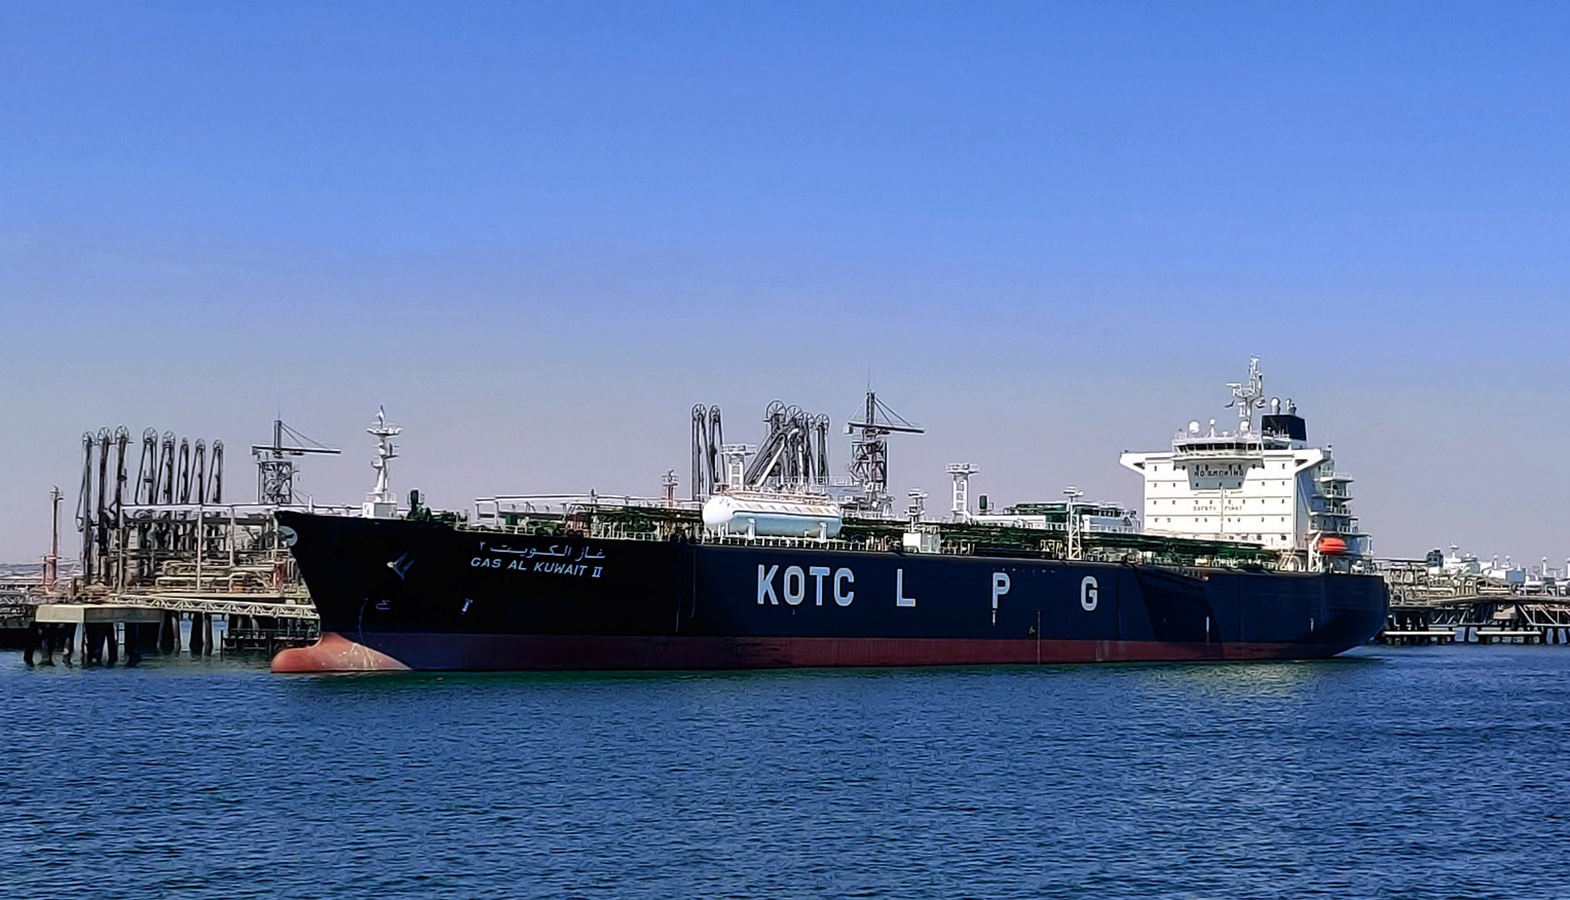 Kuwait Intends To Open The Largest LNG Terminal In The Middle East